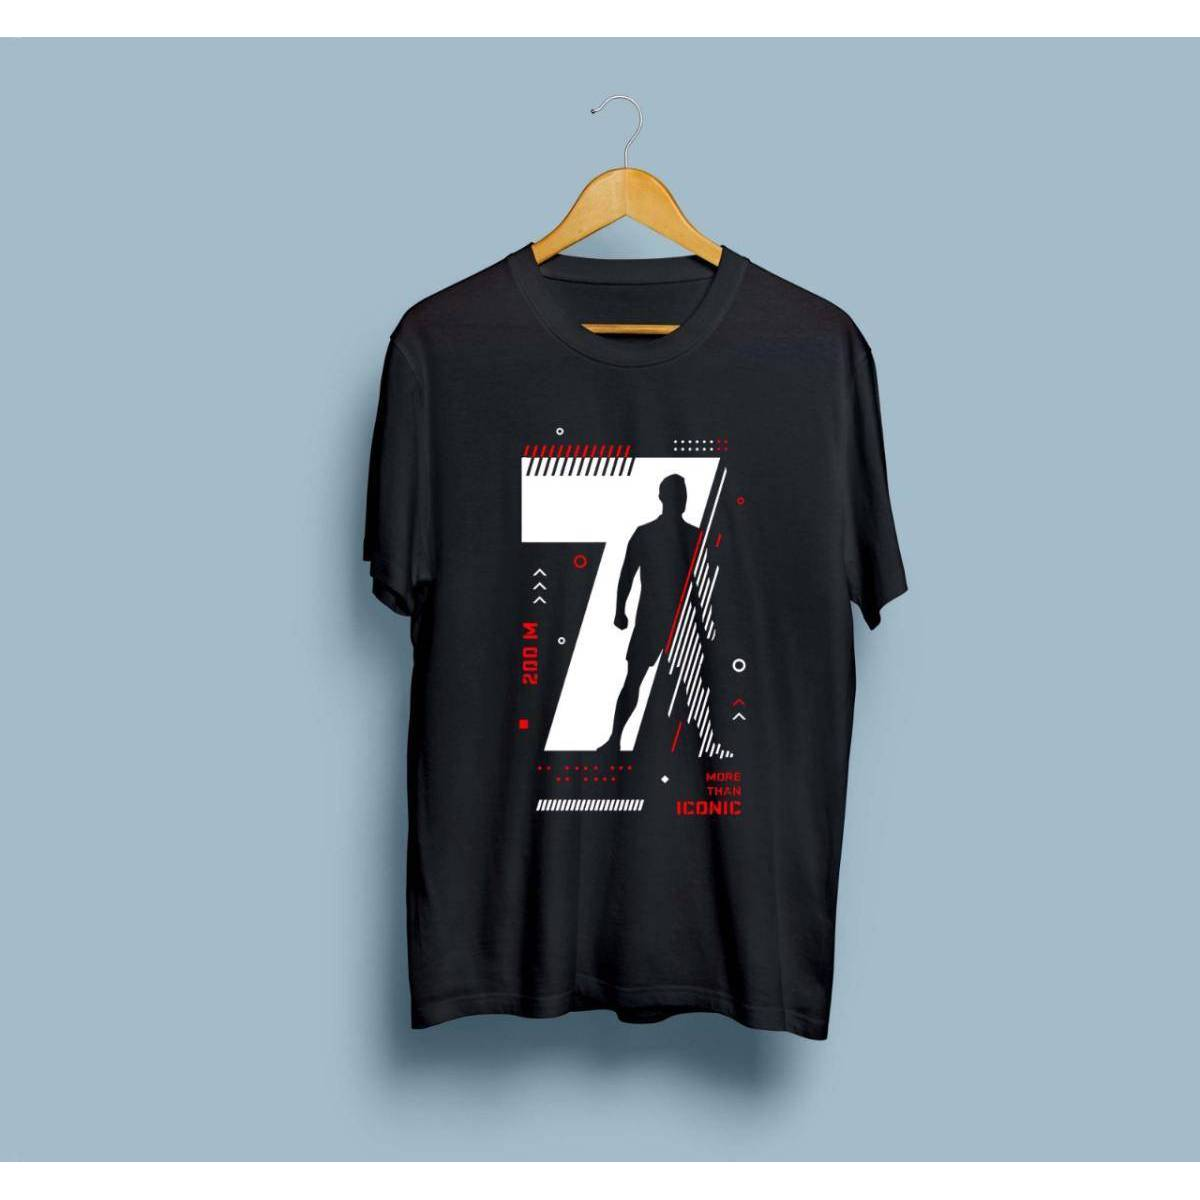 CR7 Printed Tees Round Neck Half Sleeves Summer Casual Wear Shirt Export Quality Tshirt